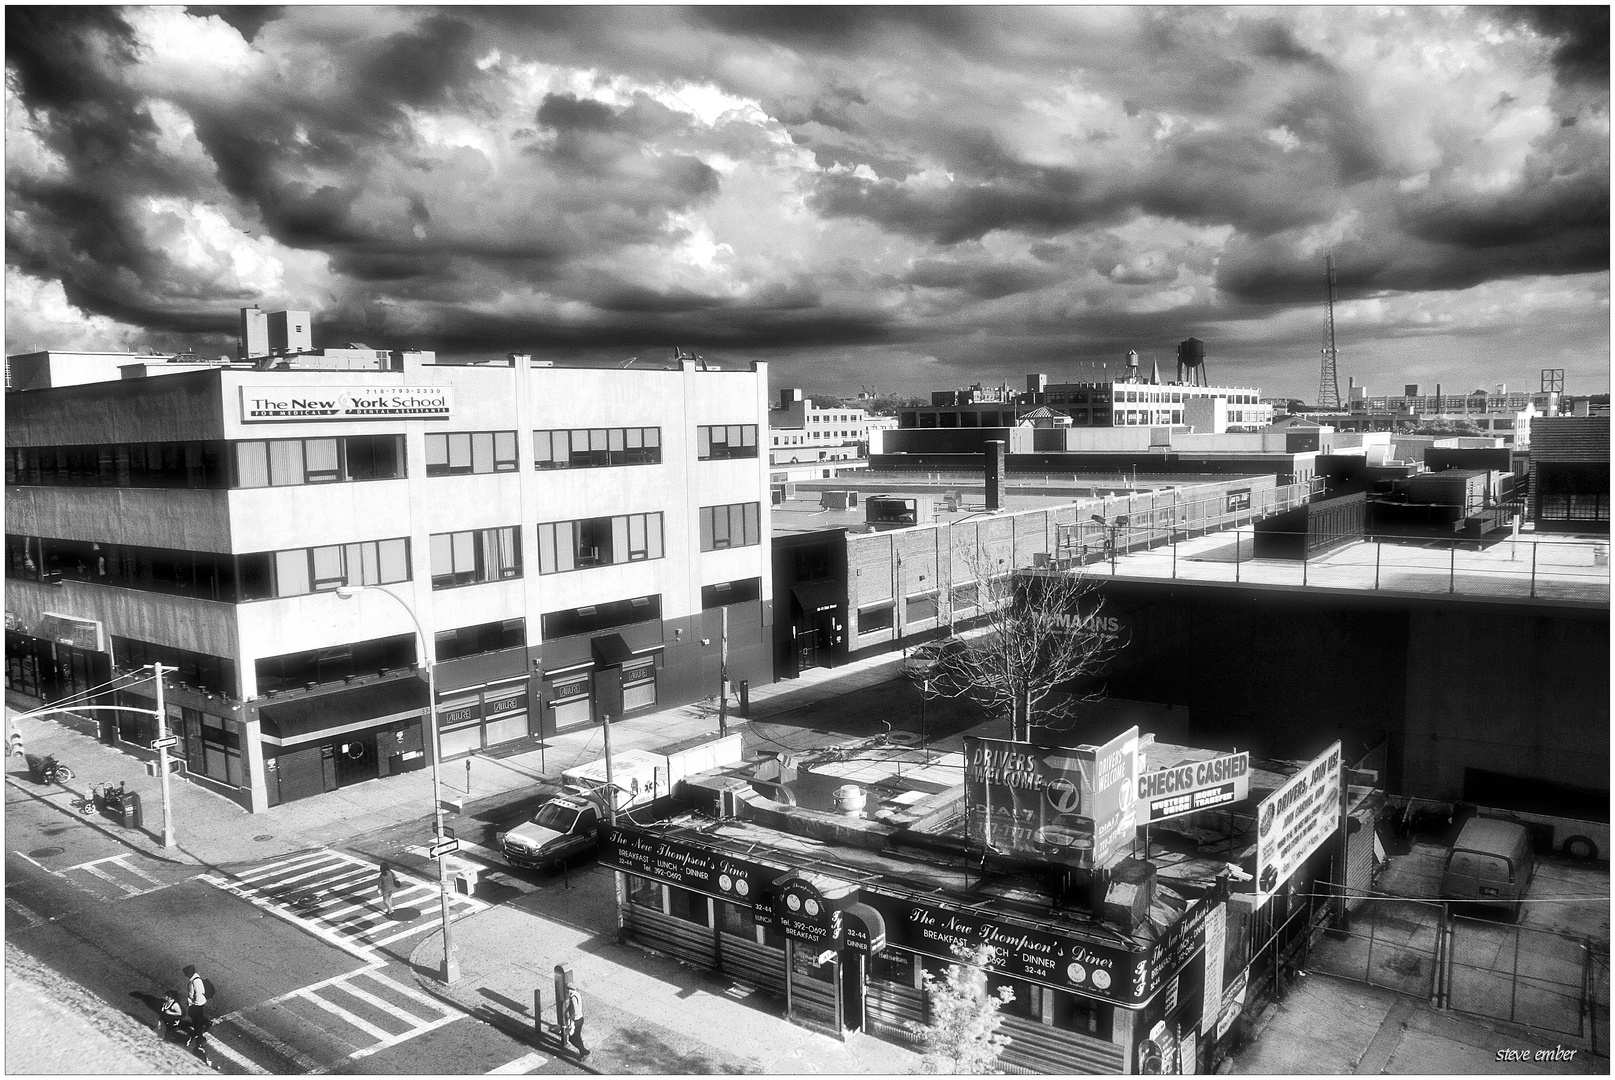 QueensScape No.2 - Storm Clouds Over Sunnyside